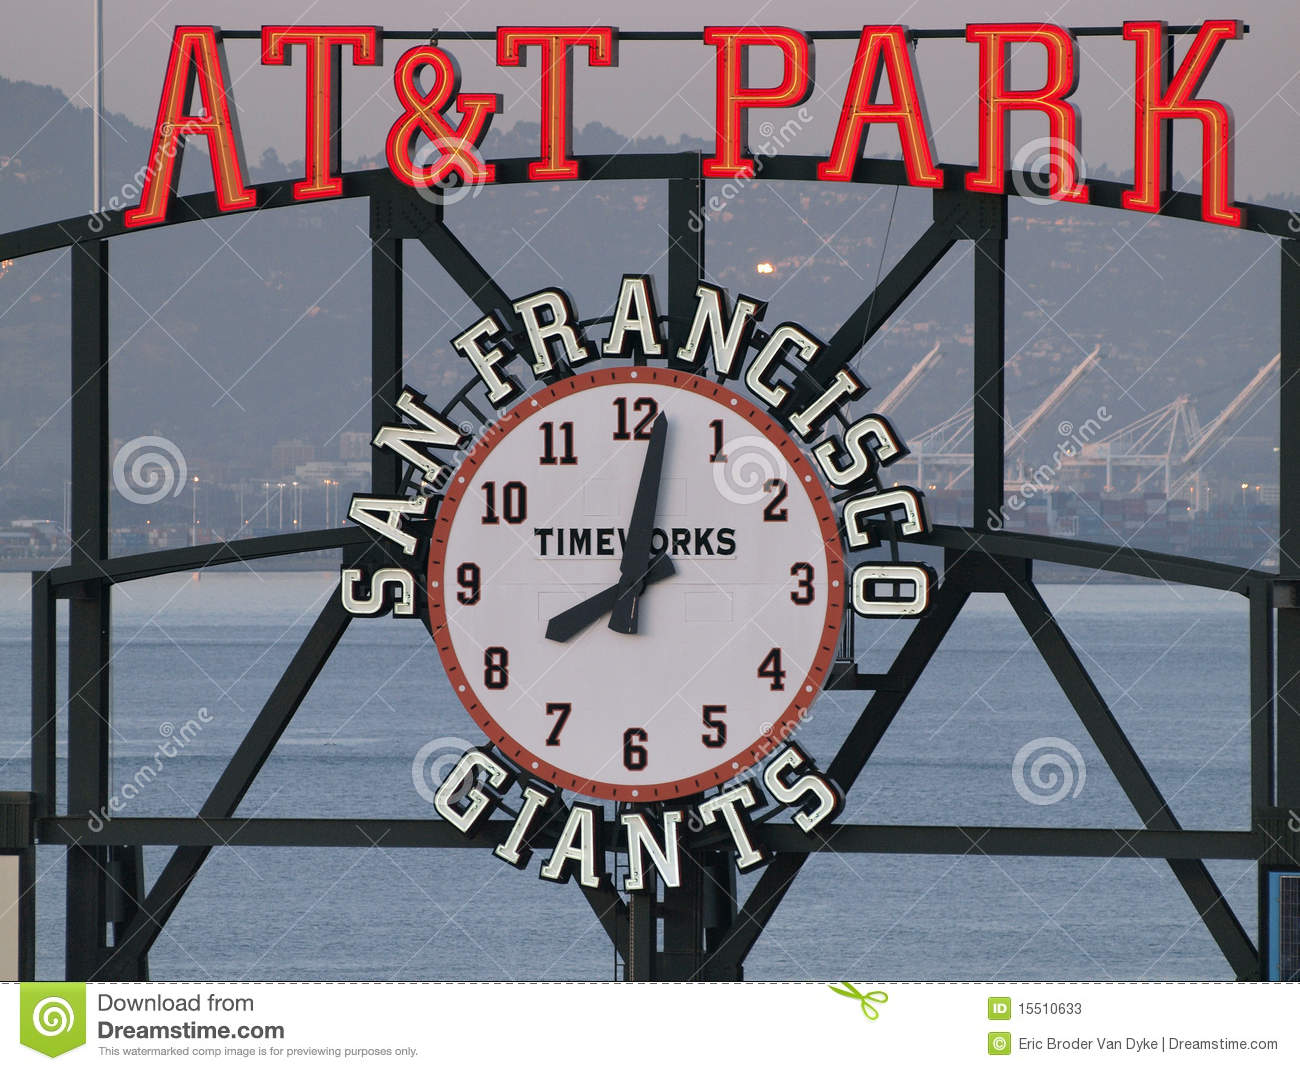 AT&T Park sign and clock